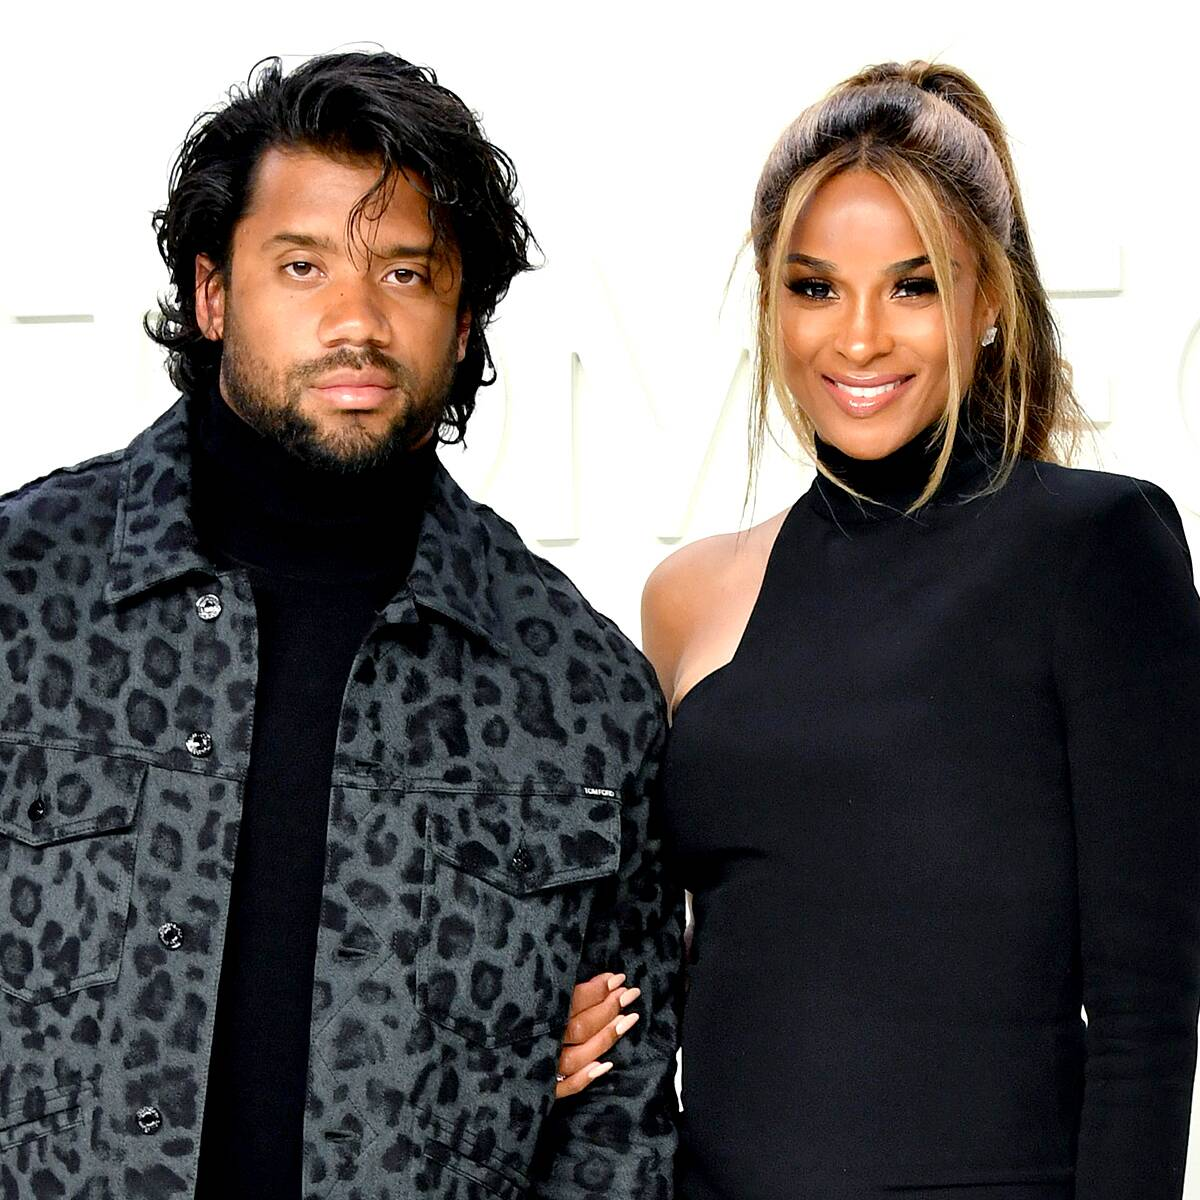 Ciara and Russell Wilson's Couples' Quiz Will Make You Feel Even More Single This Valentine's Day